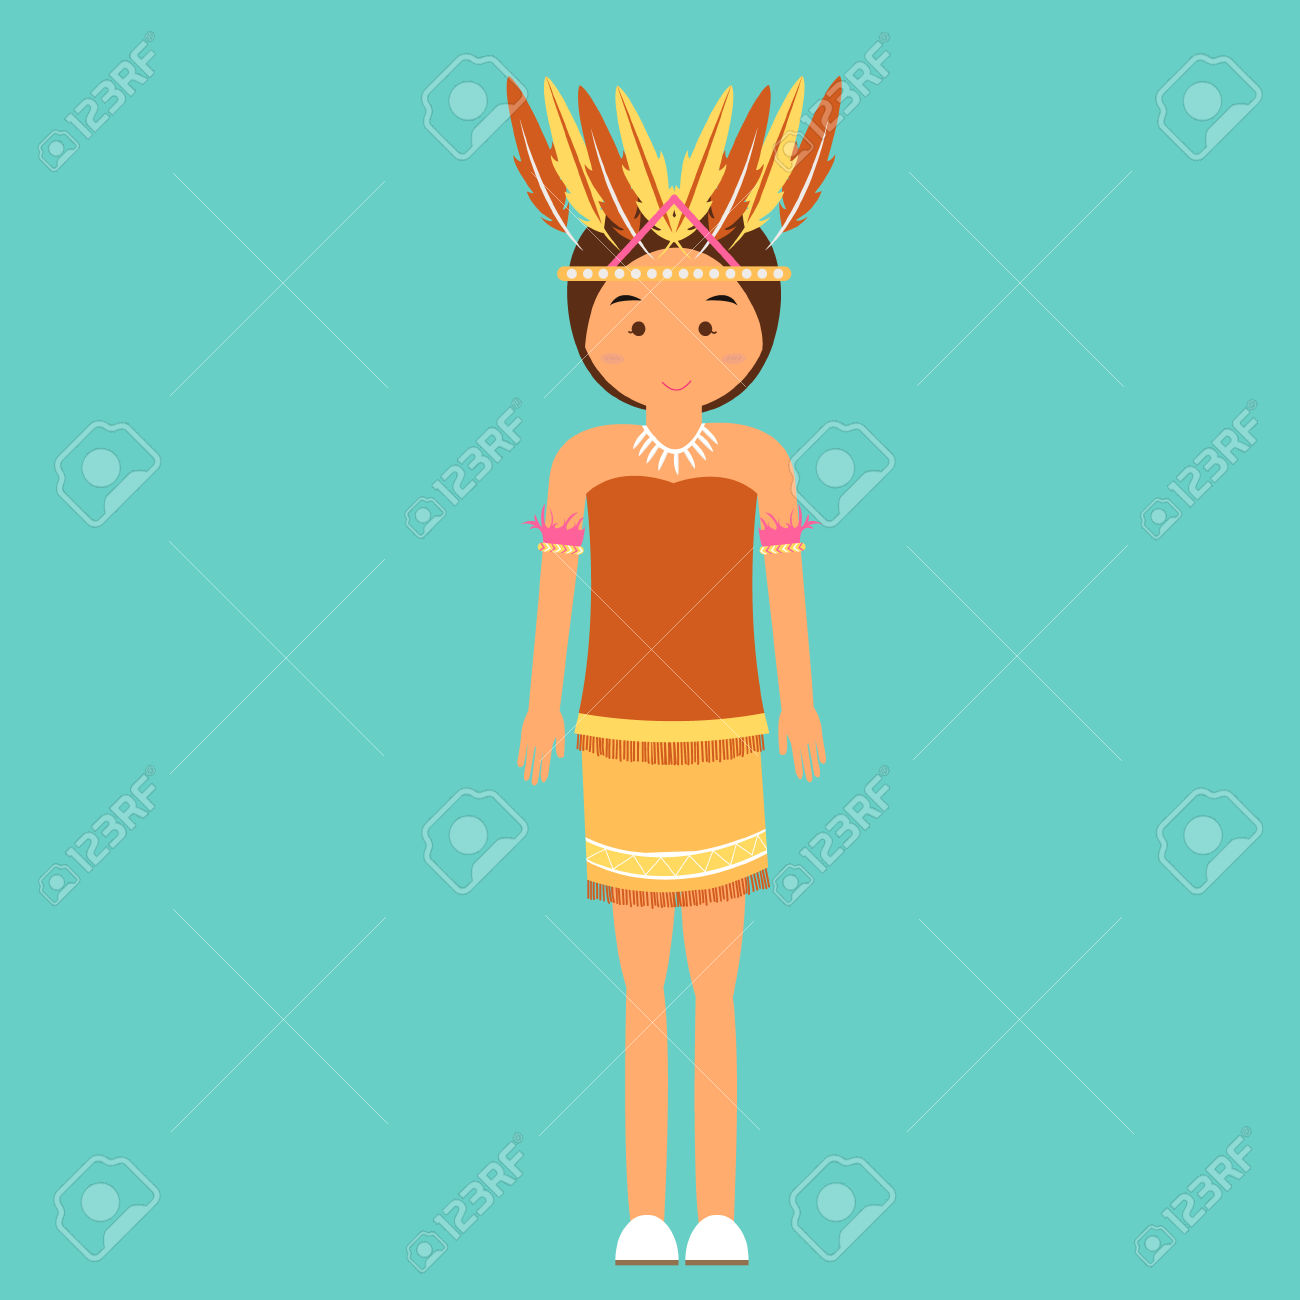 192 Papua Vector Stock Vector Illustration And Royalty Free Papua.